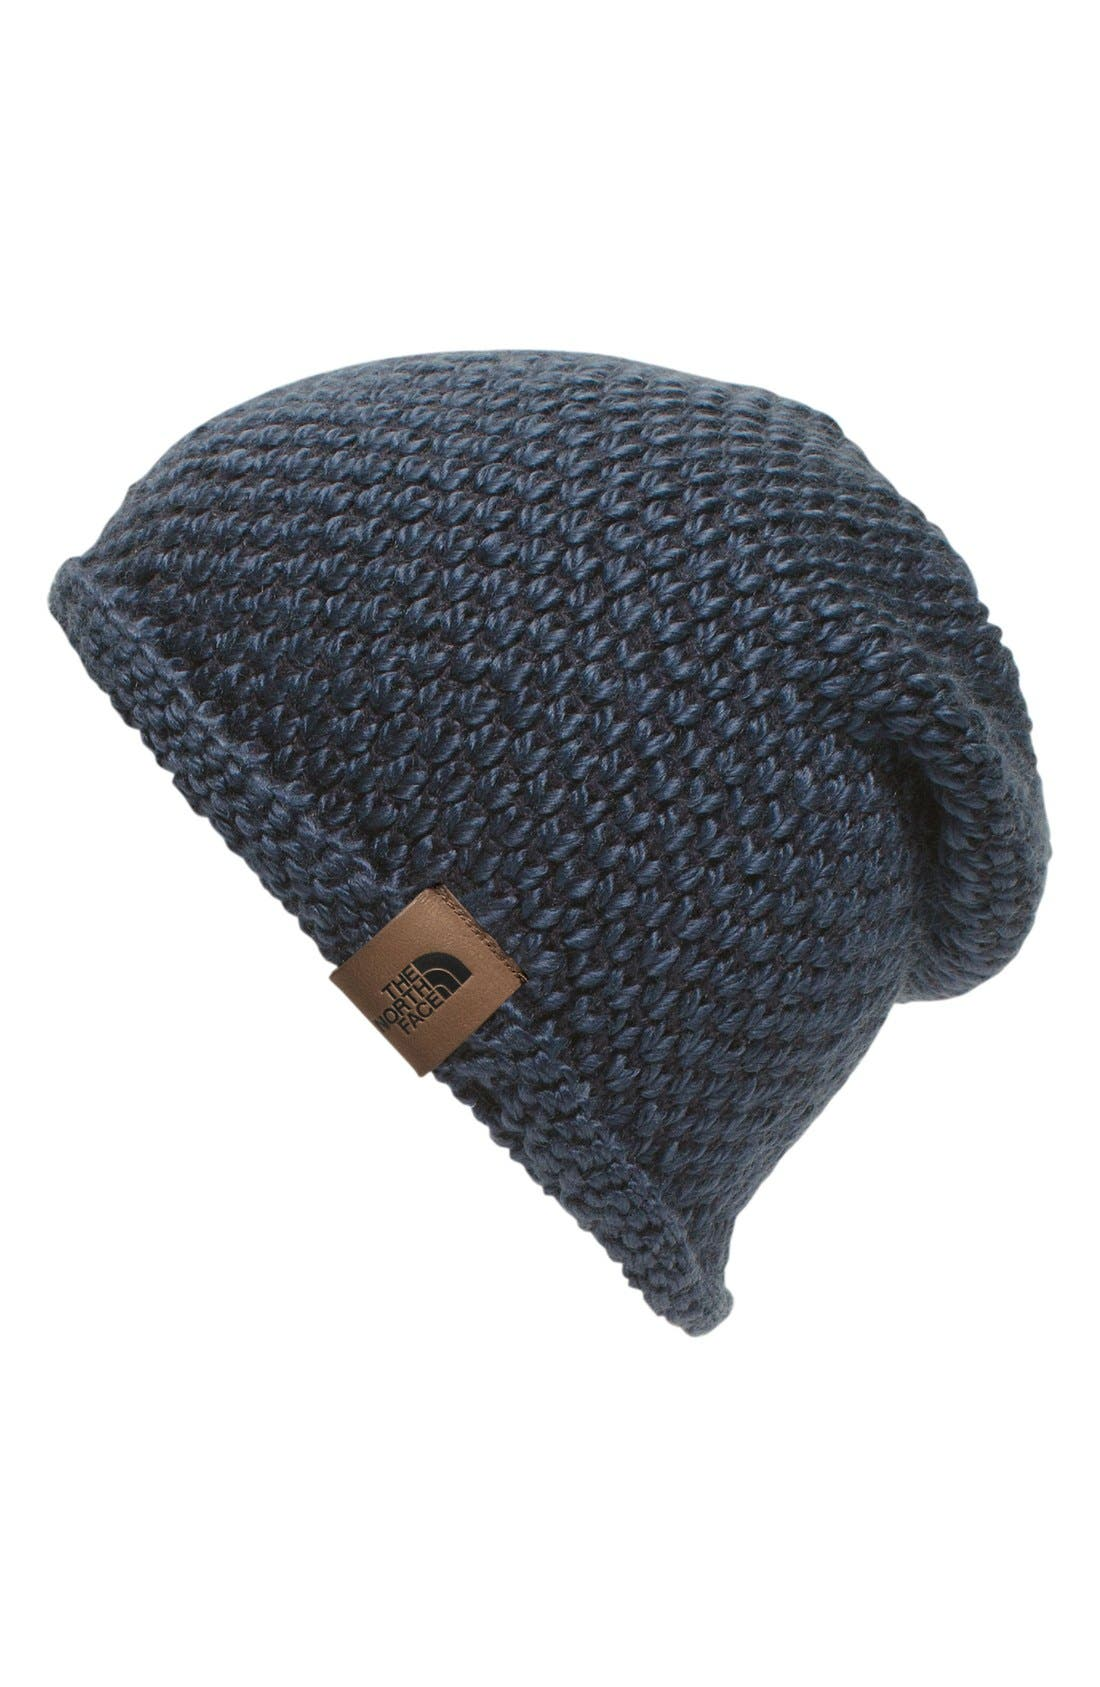 Alternate Image 1 Selected - The North Face Knit Beanie